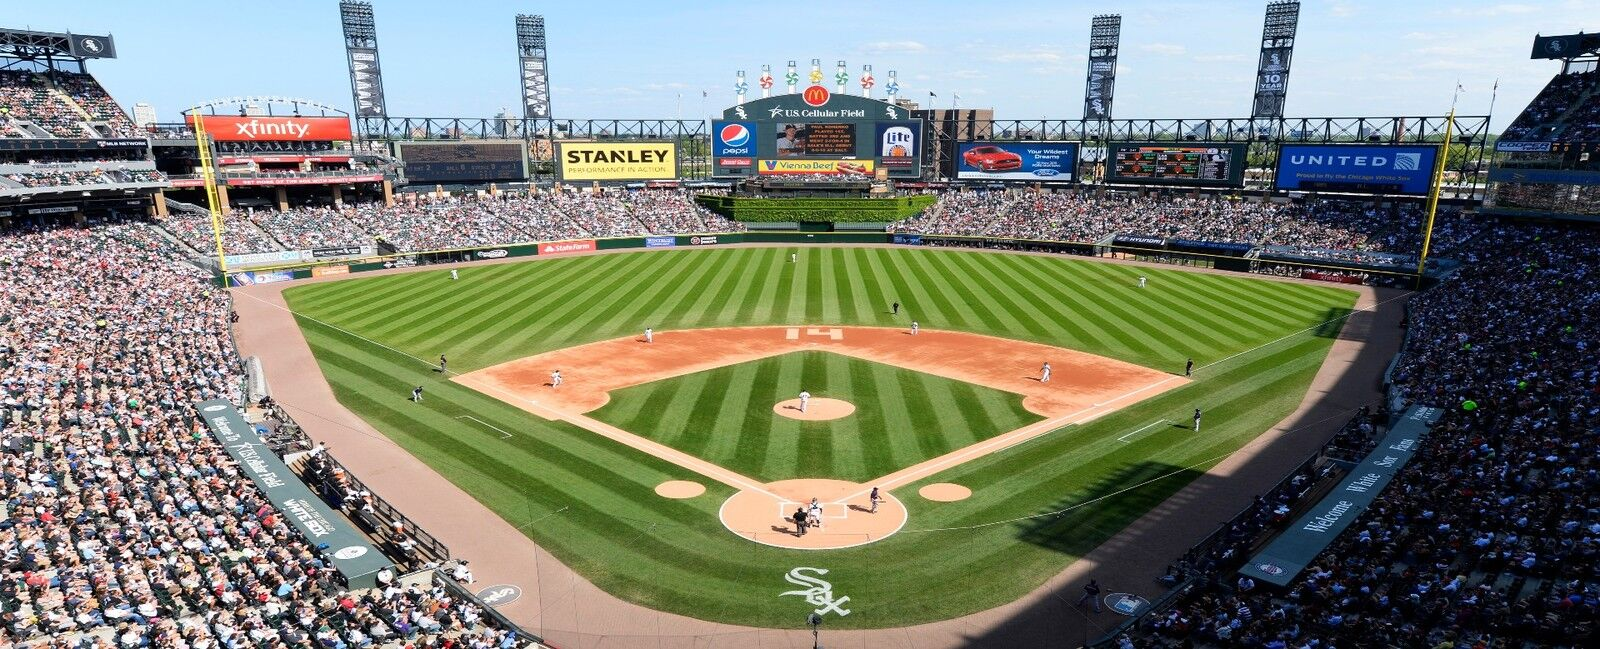 White Sox Tickets Chicago White Sox Tickets On StubHub - Us cellular field seating map